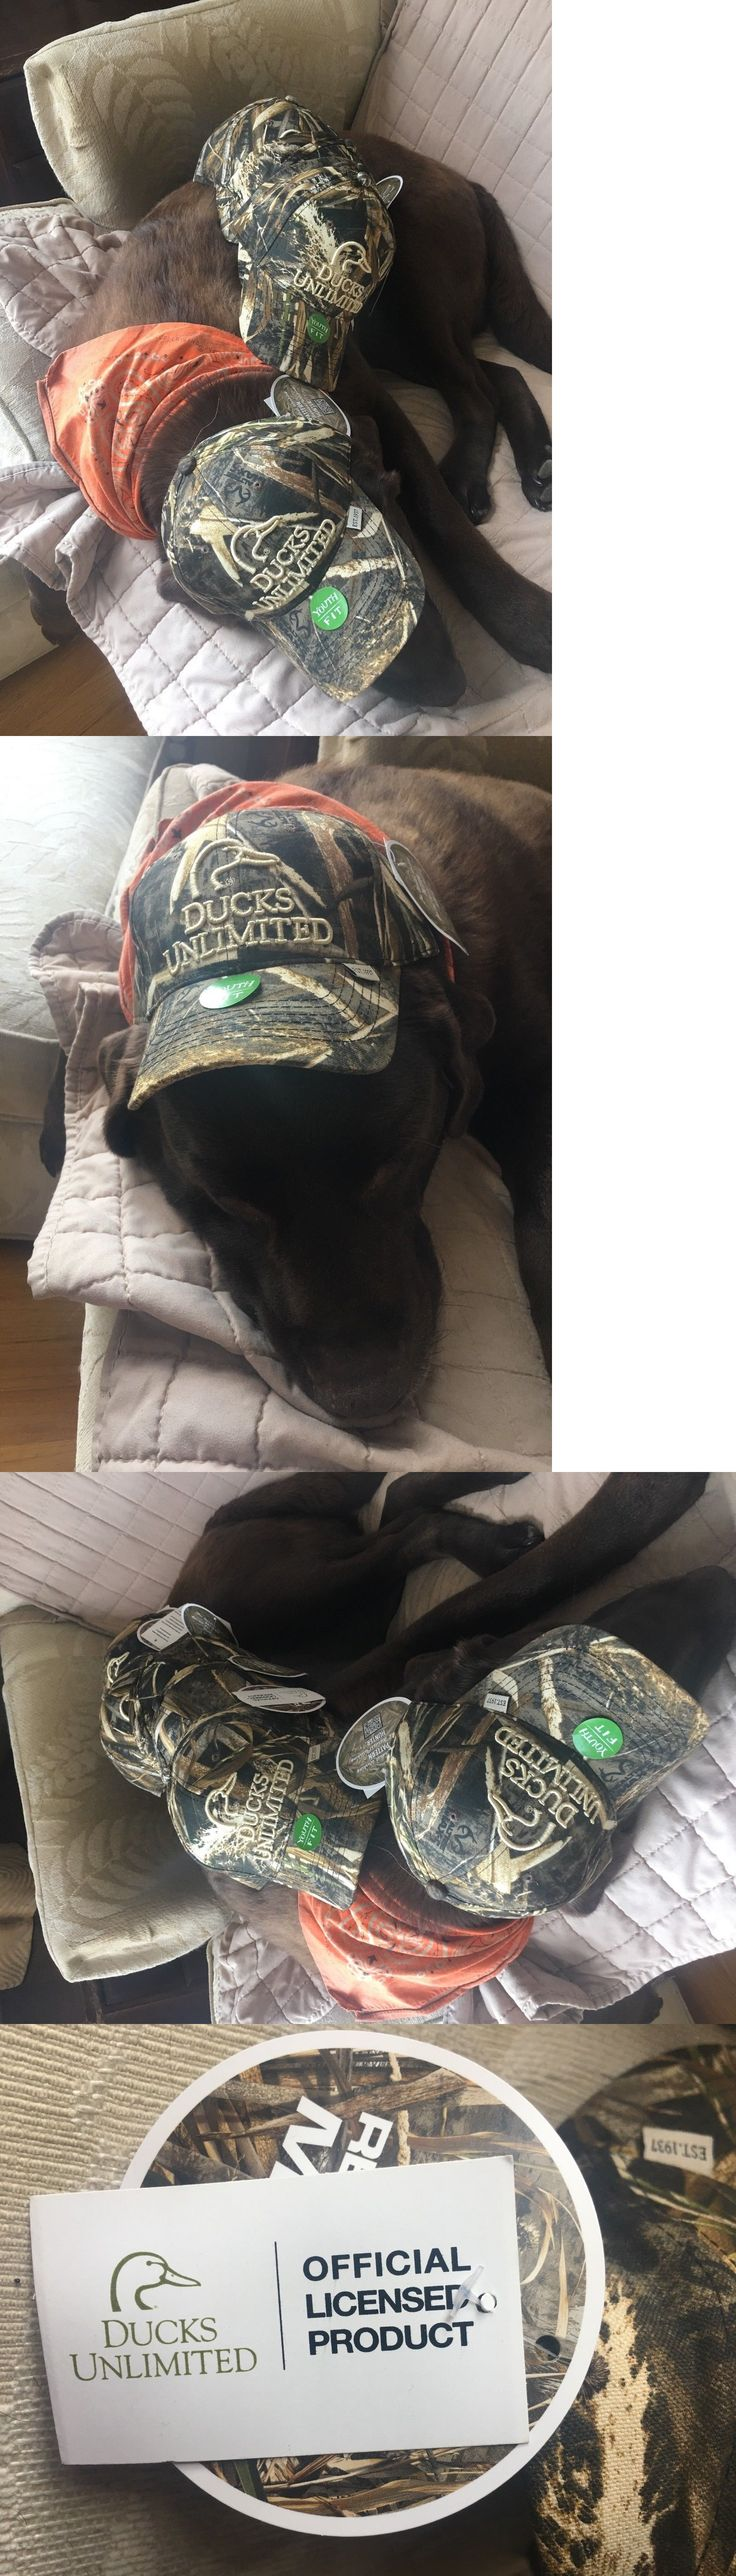 Other Kids Clothing and Accs 175640: Lot Of 6 Youth Boys Outdoor Caps Ducks Unlimited Camo Hats Adjustable New -> BUY IT NOW ONLY: $39.99 on eBay!